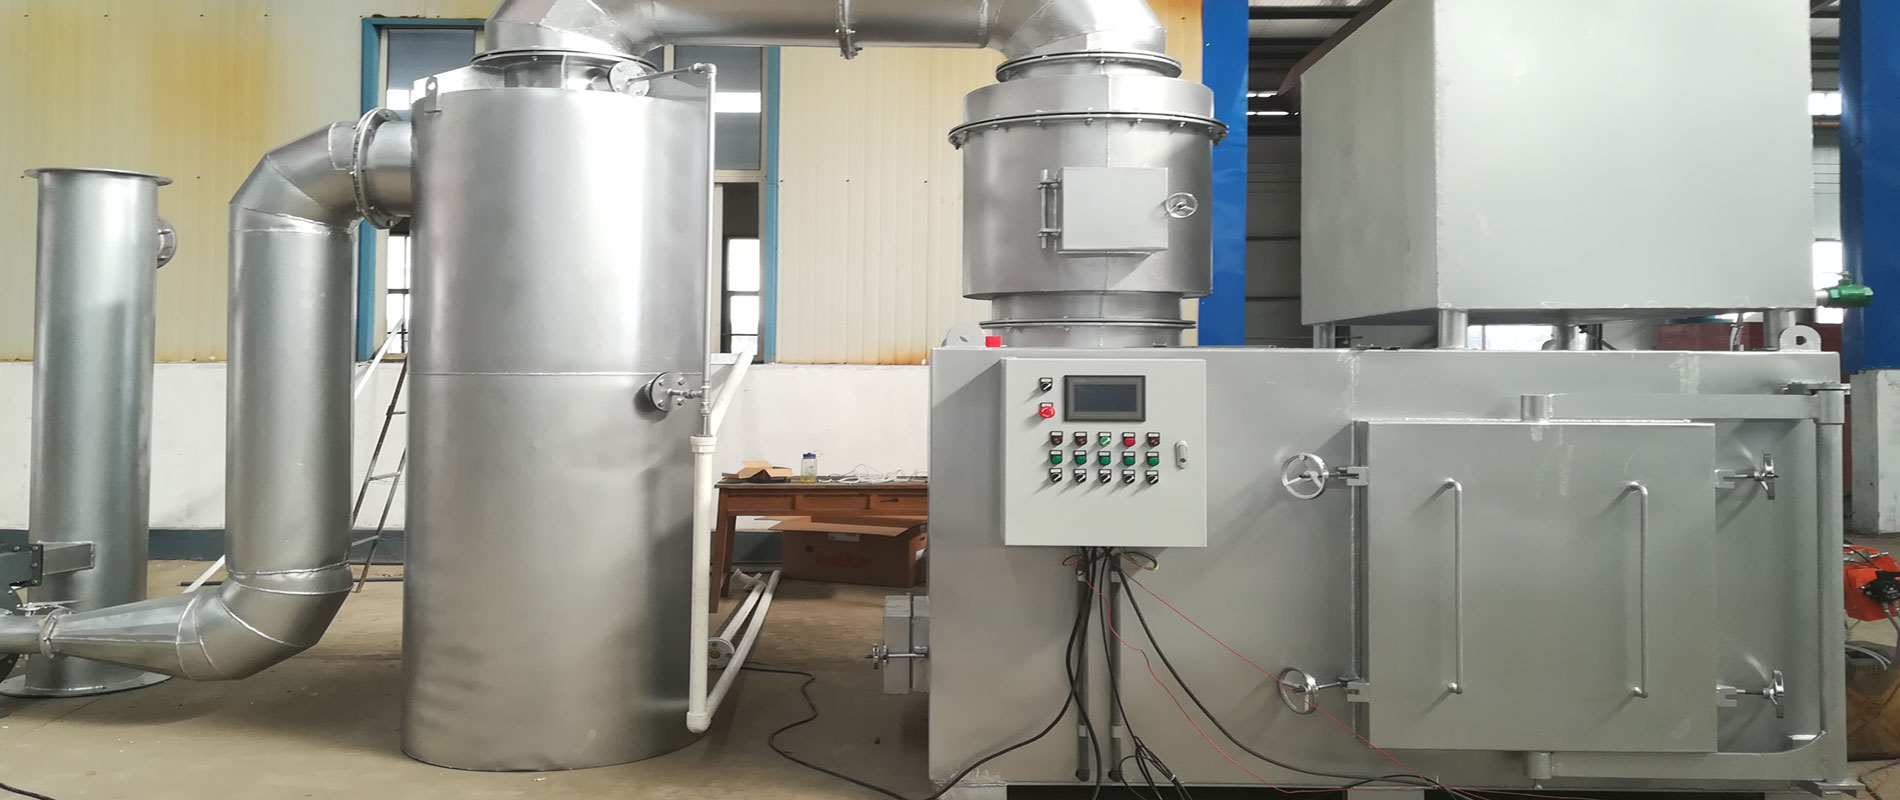 Medical Waste Incinerator for Coronavirus Disease(COVID-19)